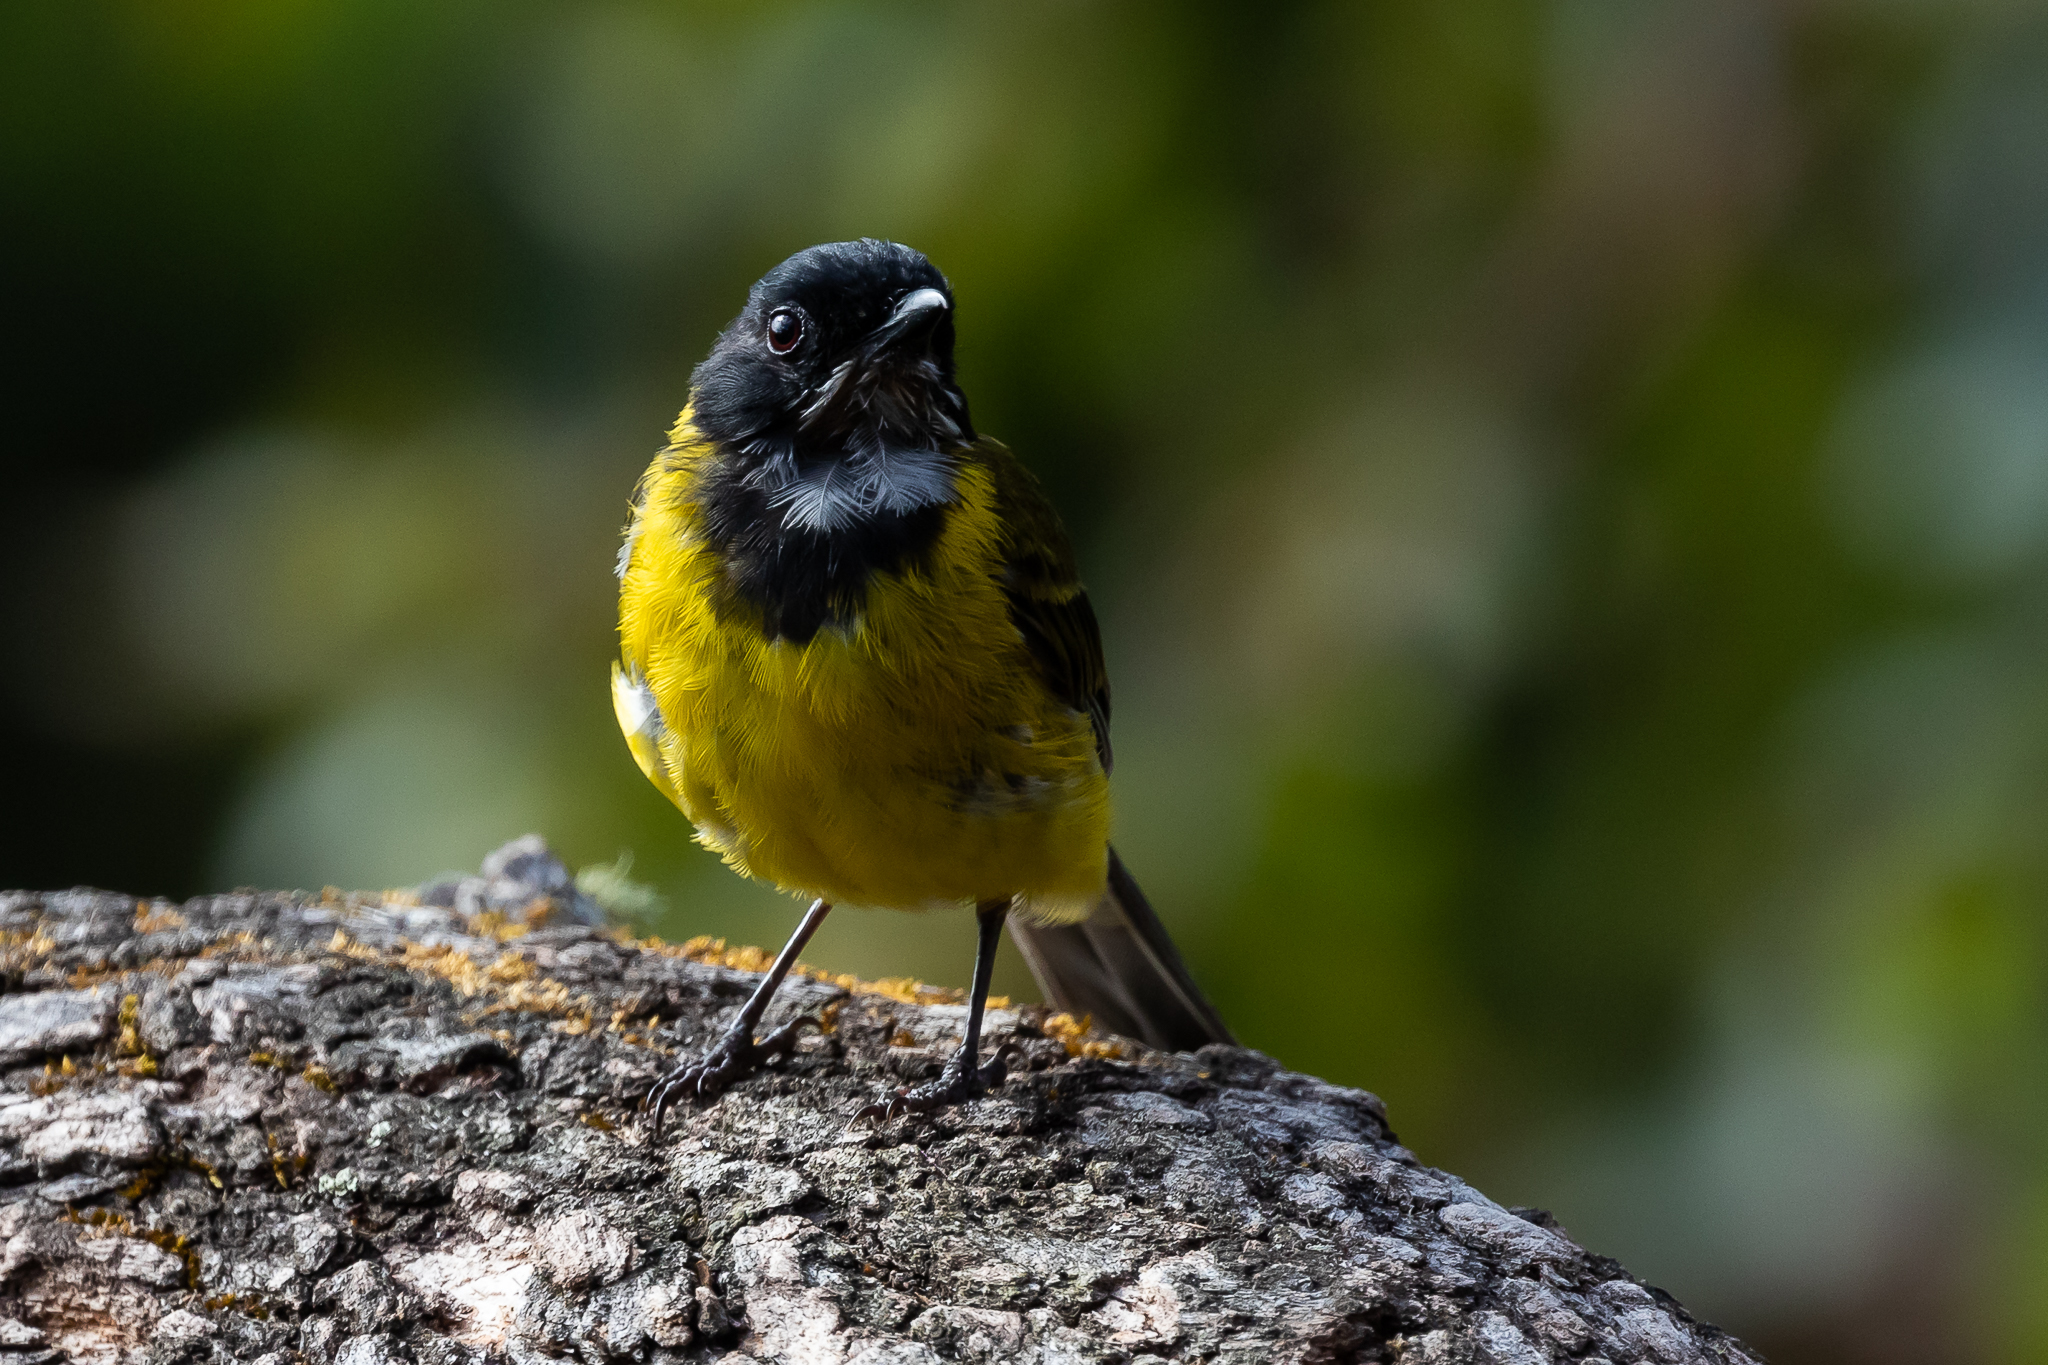 The Western Golden Whistler is another Australian species which has diverged at the extremes of the continent. There is controversy as to this birds relationship with the Golden Whistler of other areas.